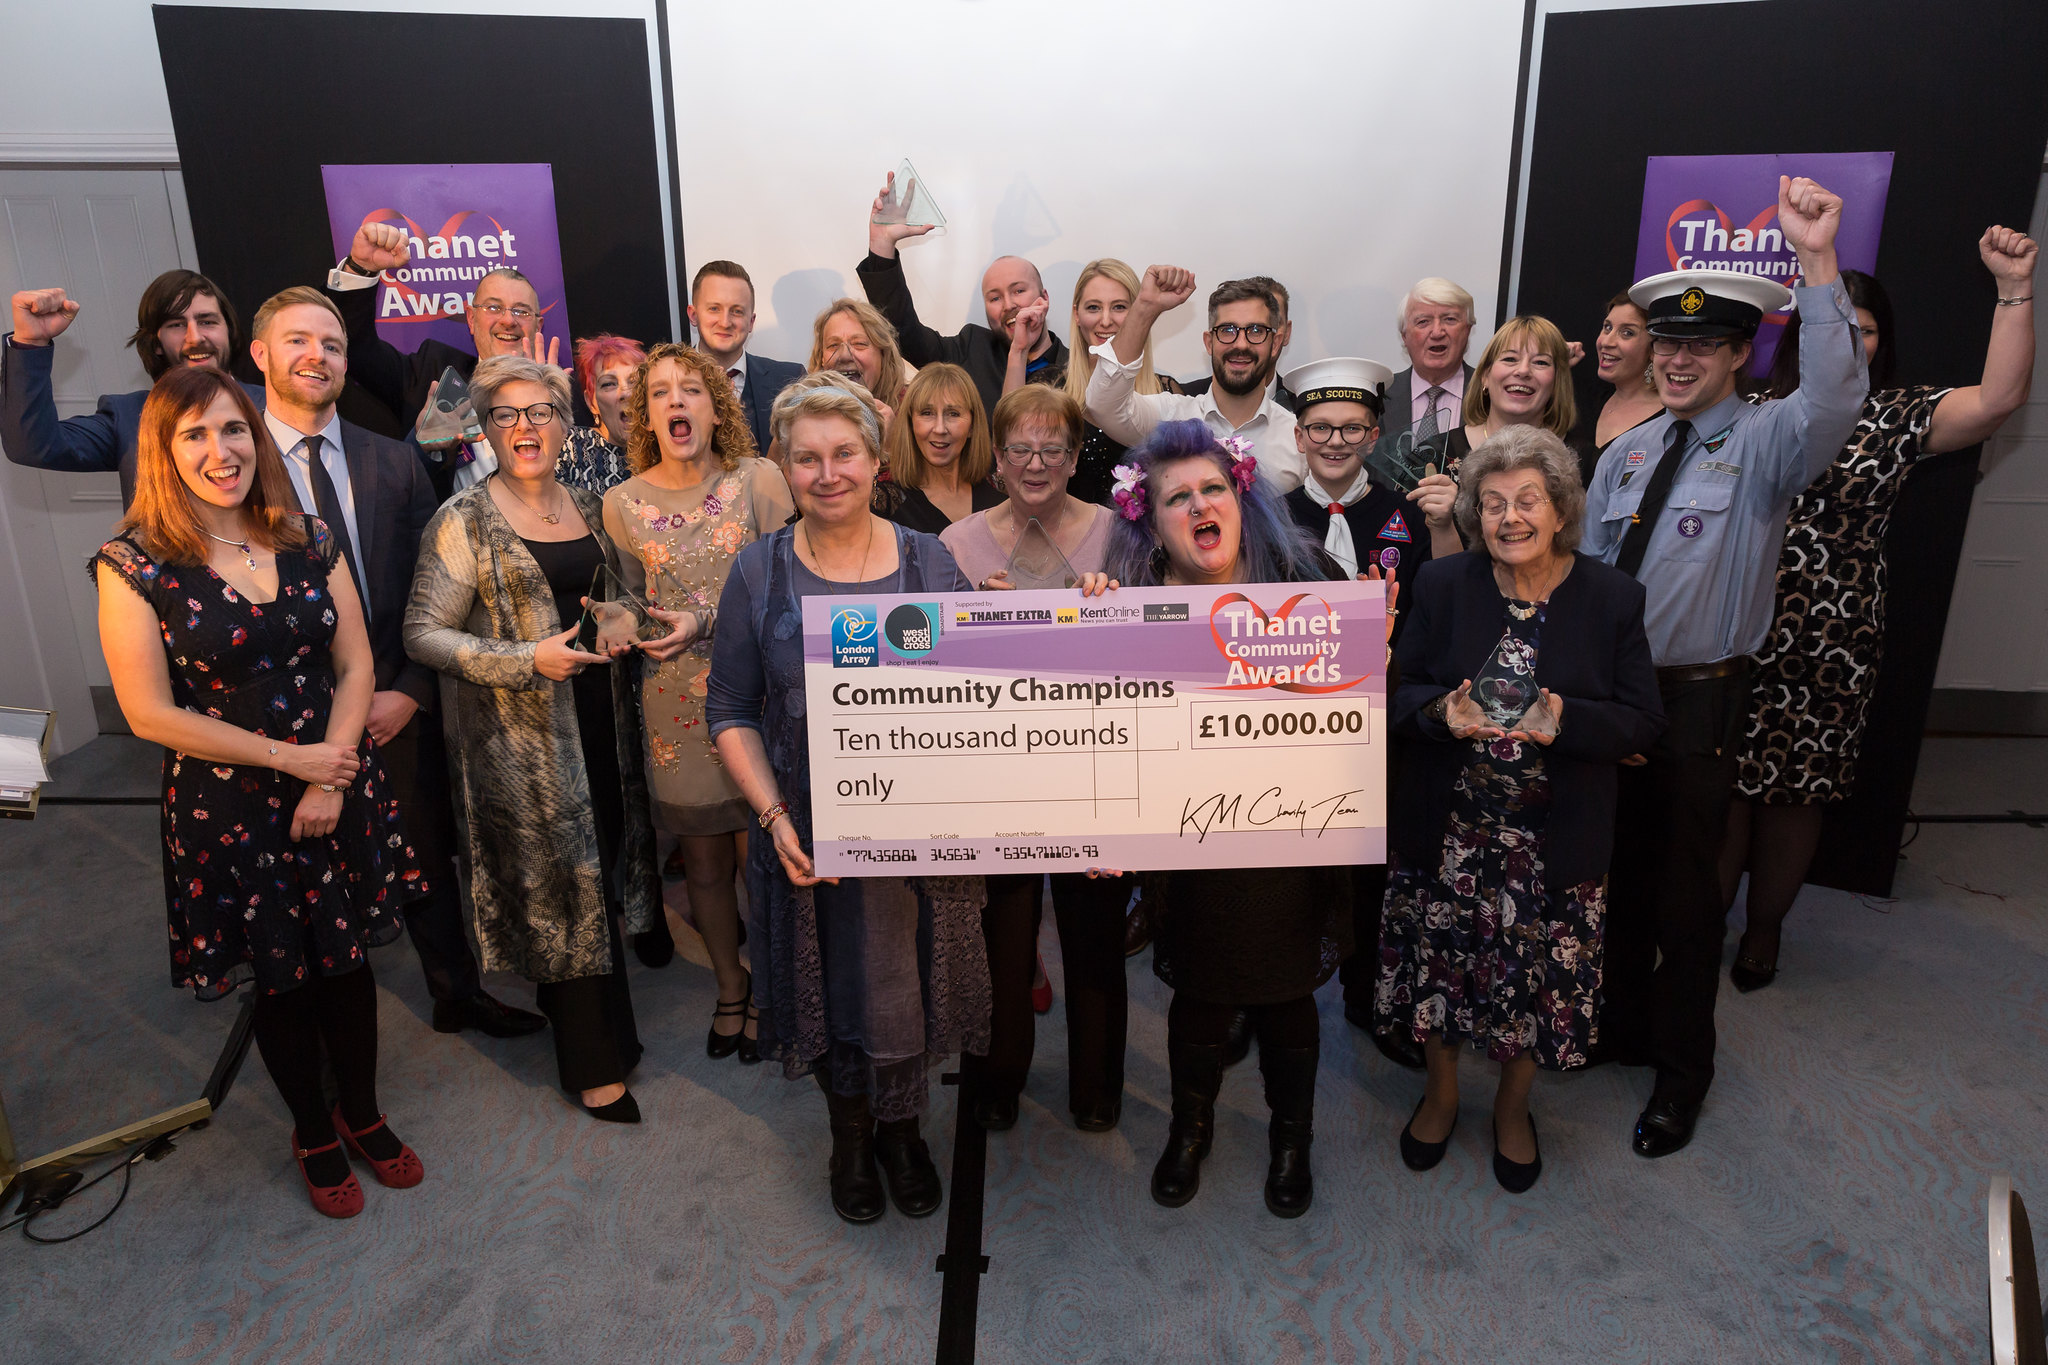 Thanet Community Awards 2019